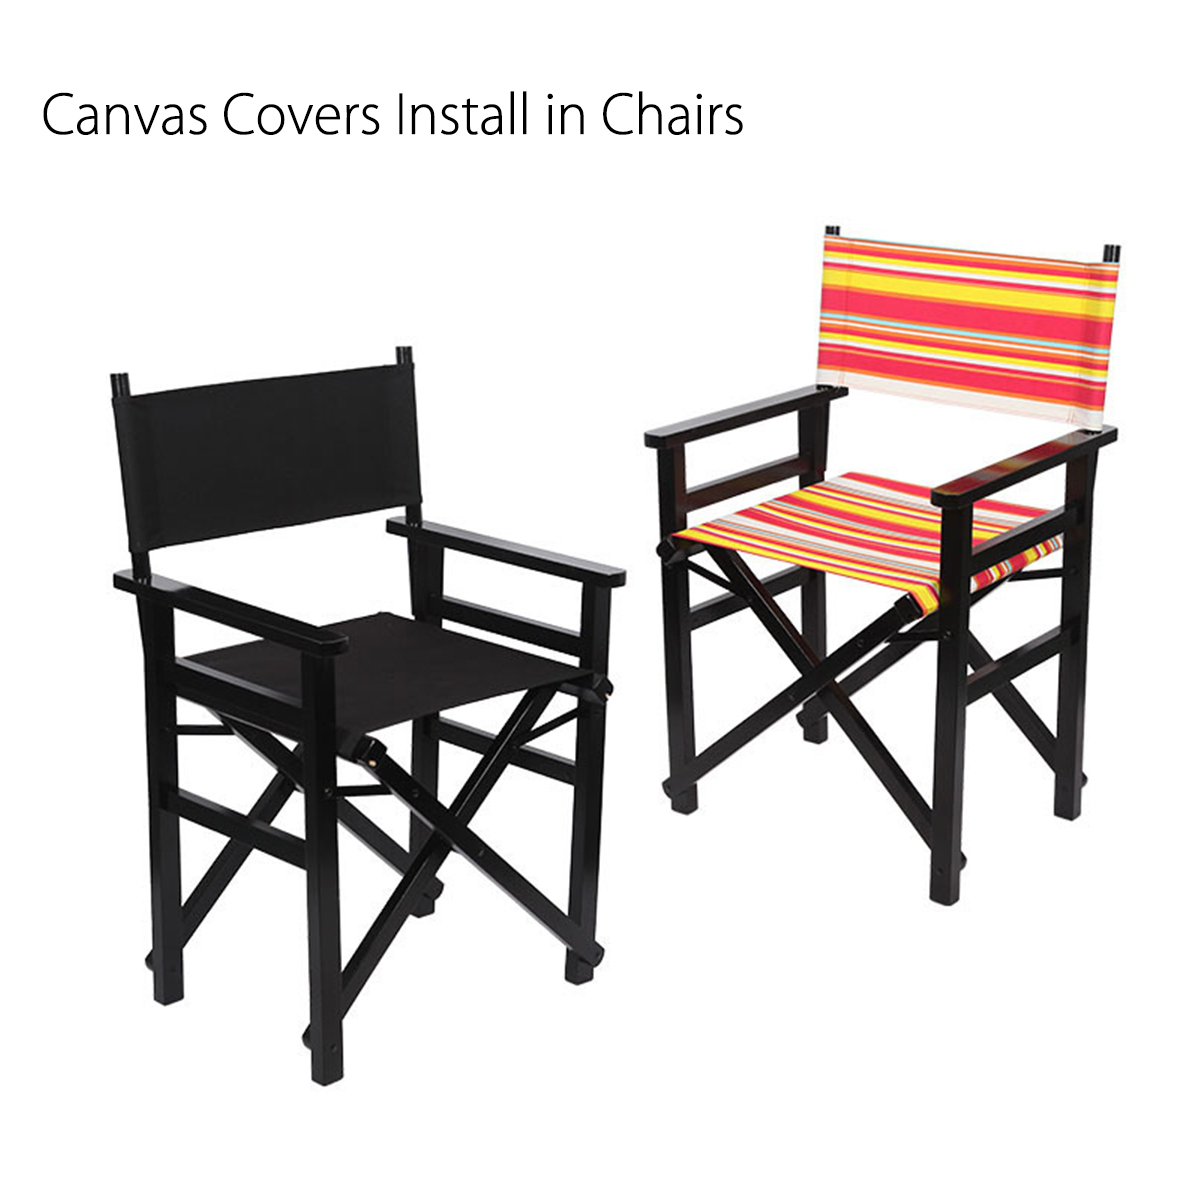 4 Colors Casual Directors Chair Canvas Seat Back Cover Replacement Kit